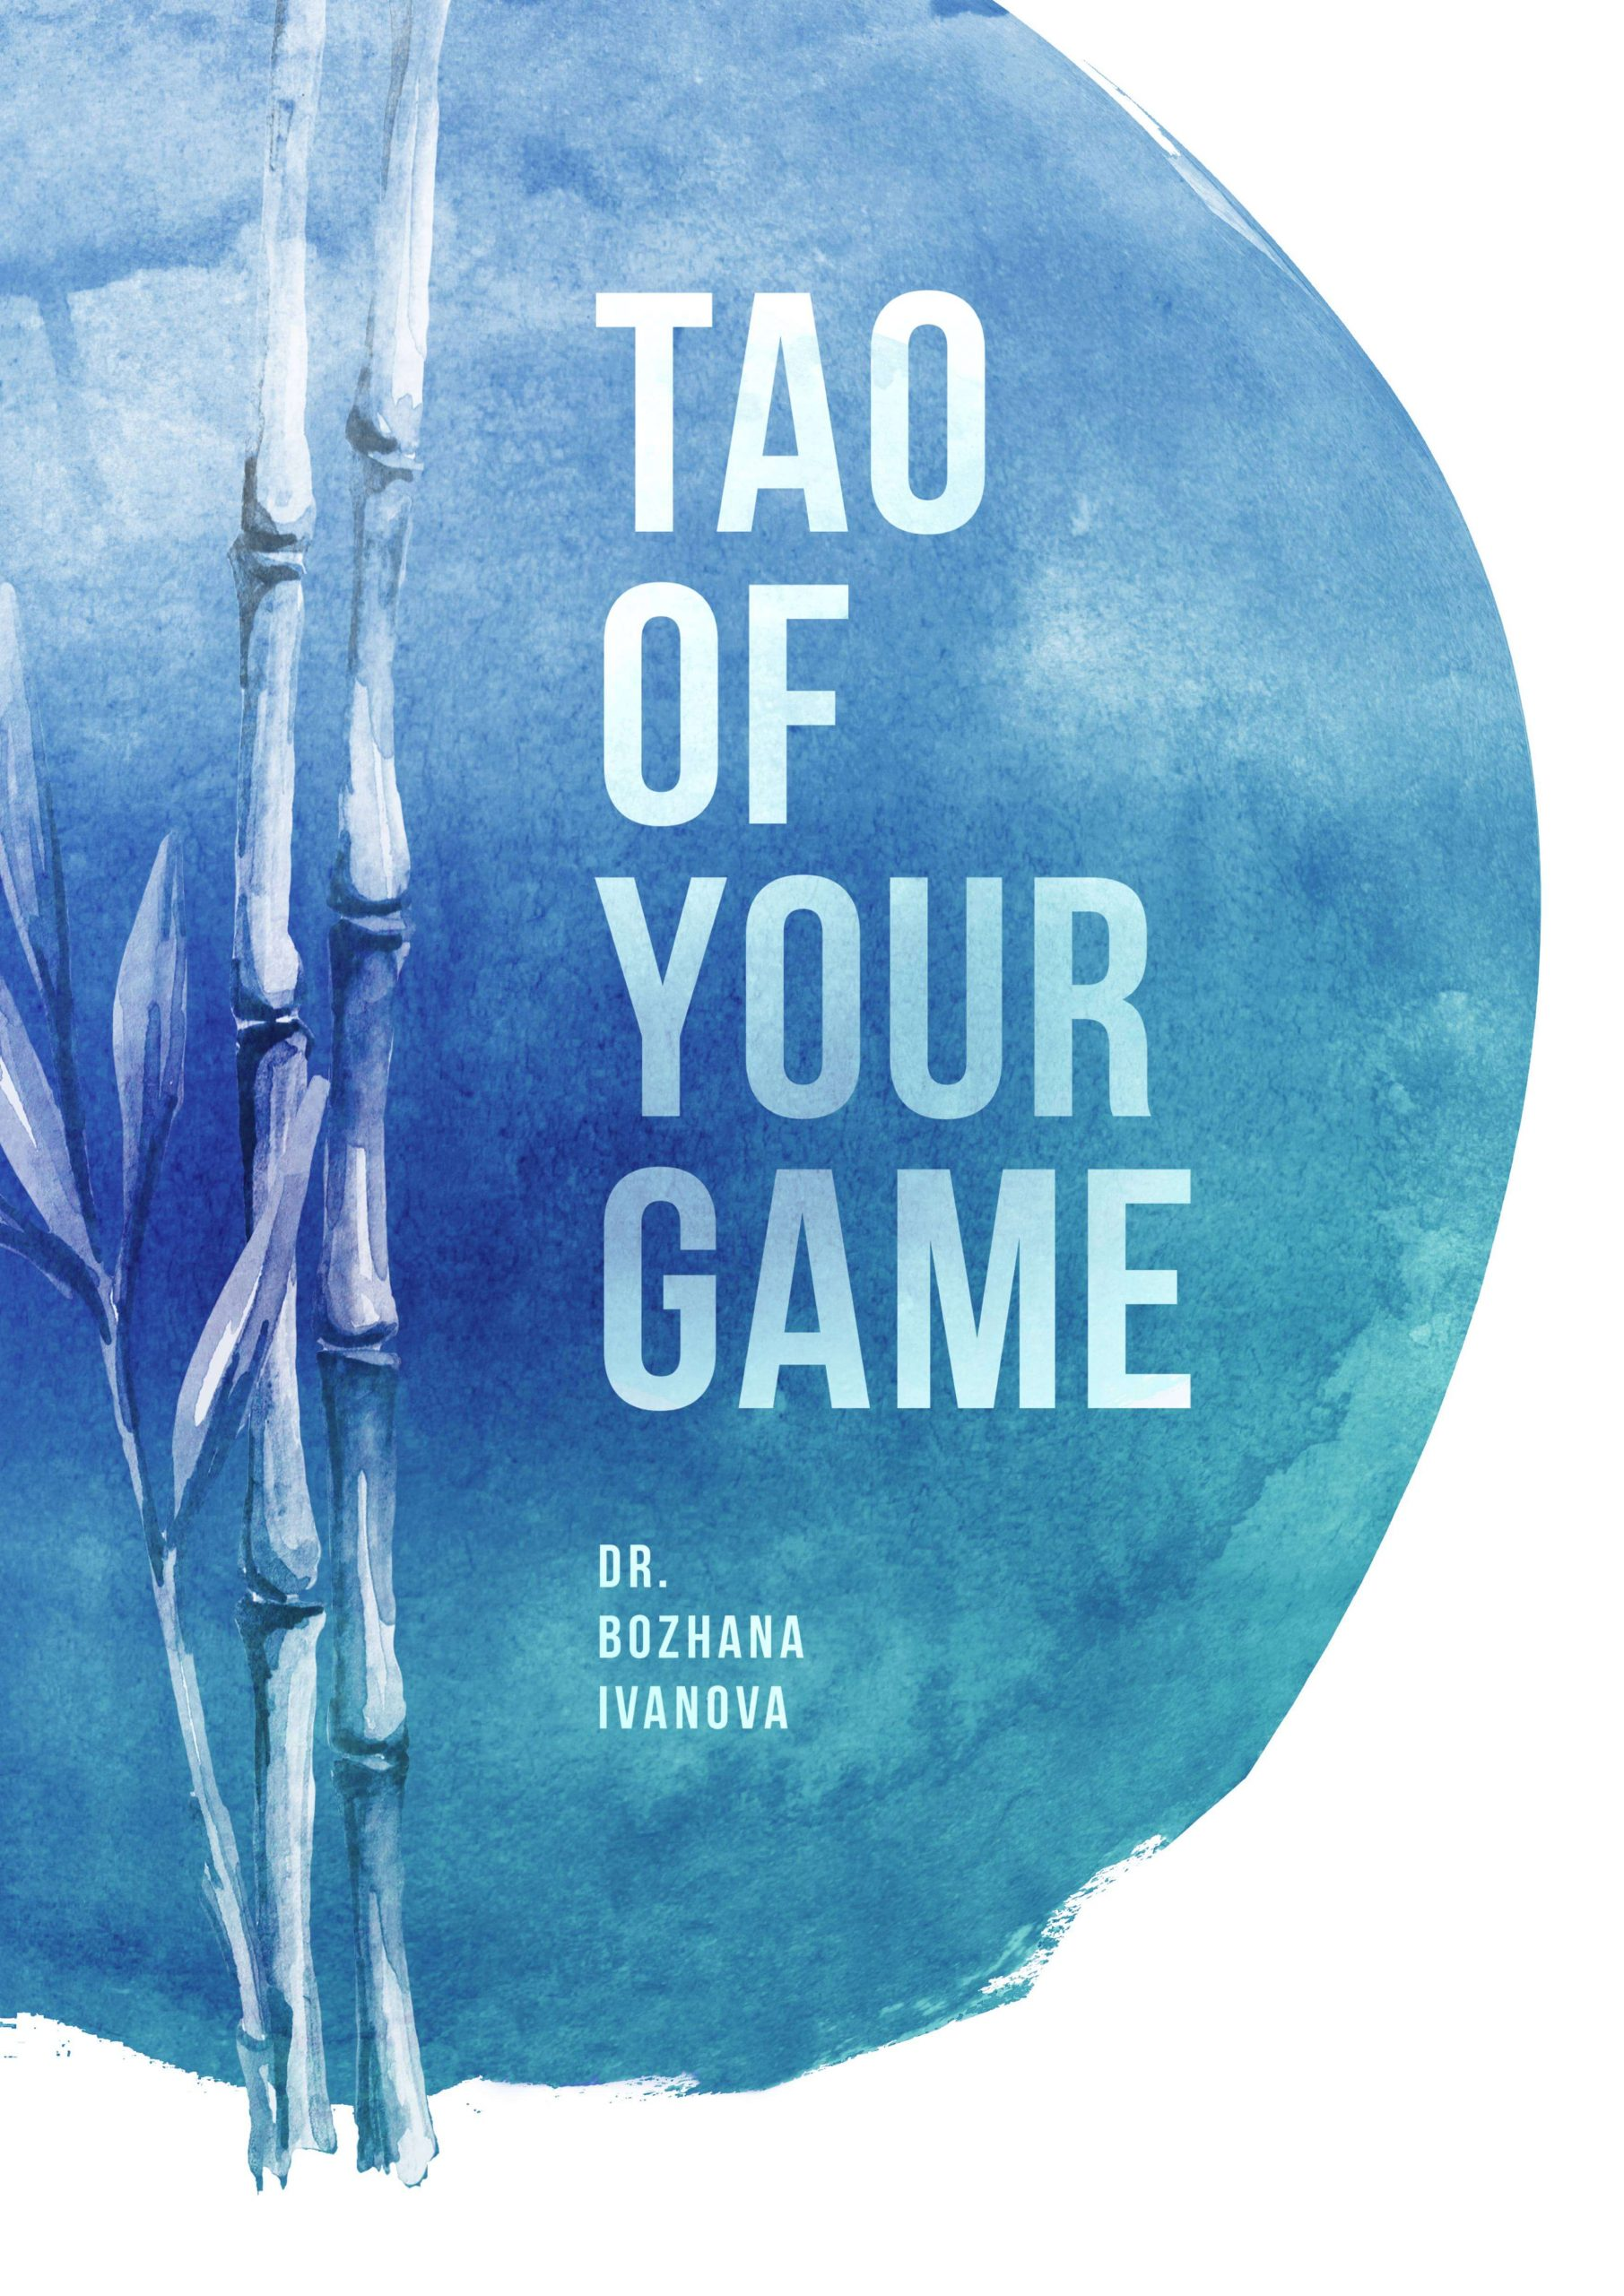 Tao of Your Game a book by Dr. Bozhana Ivanova